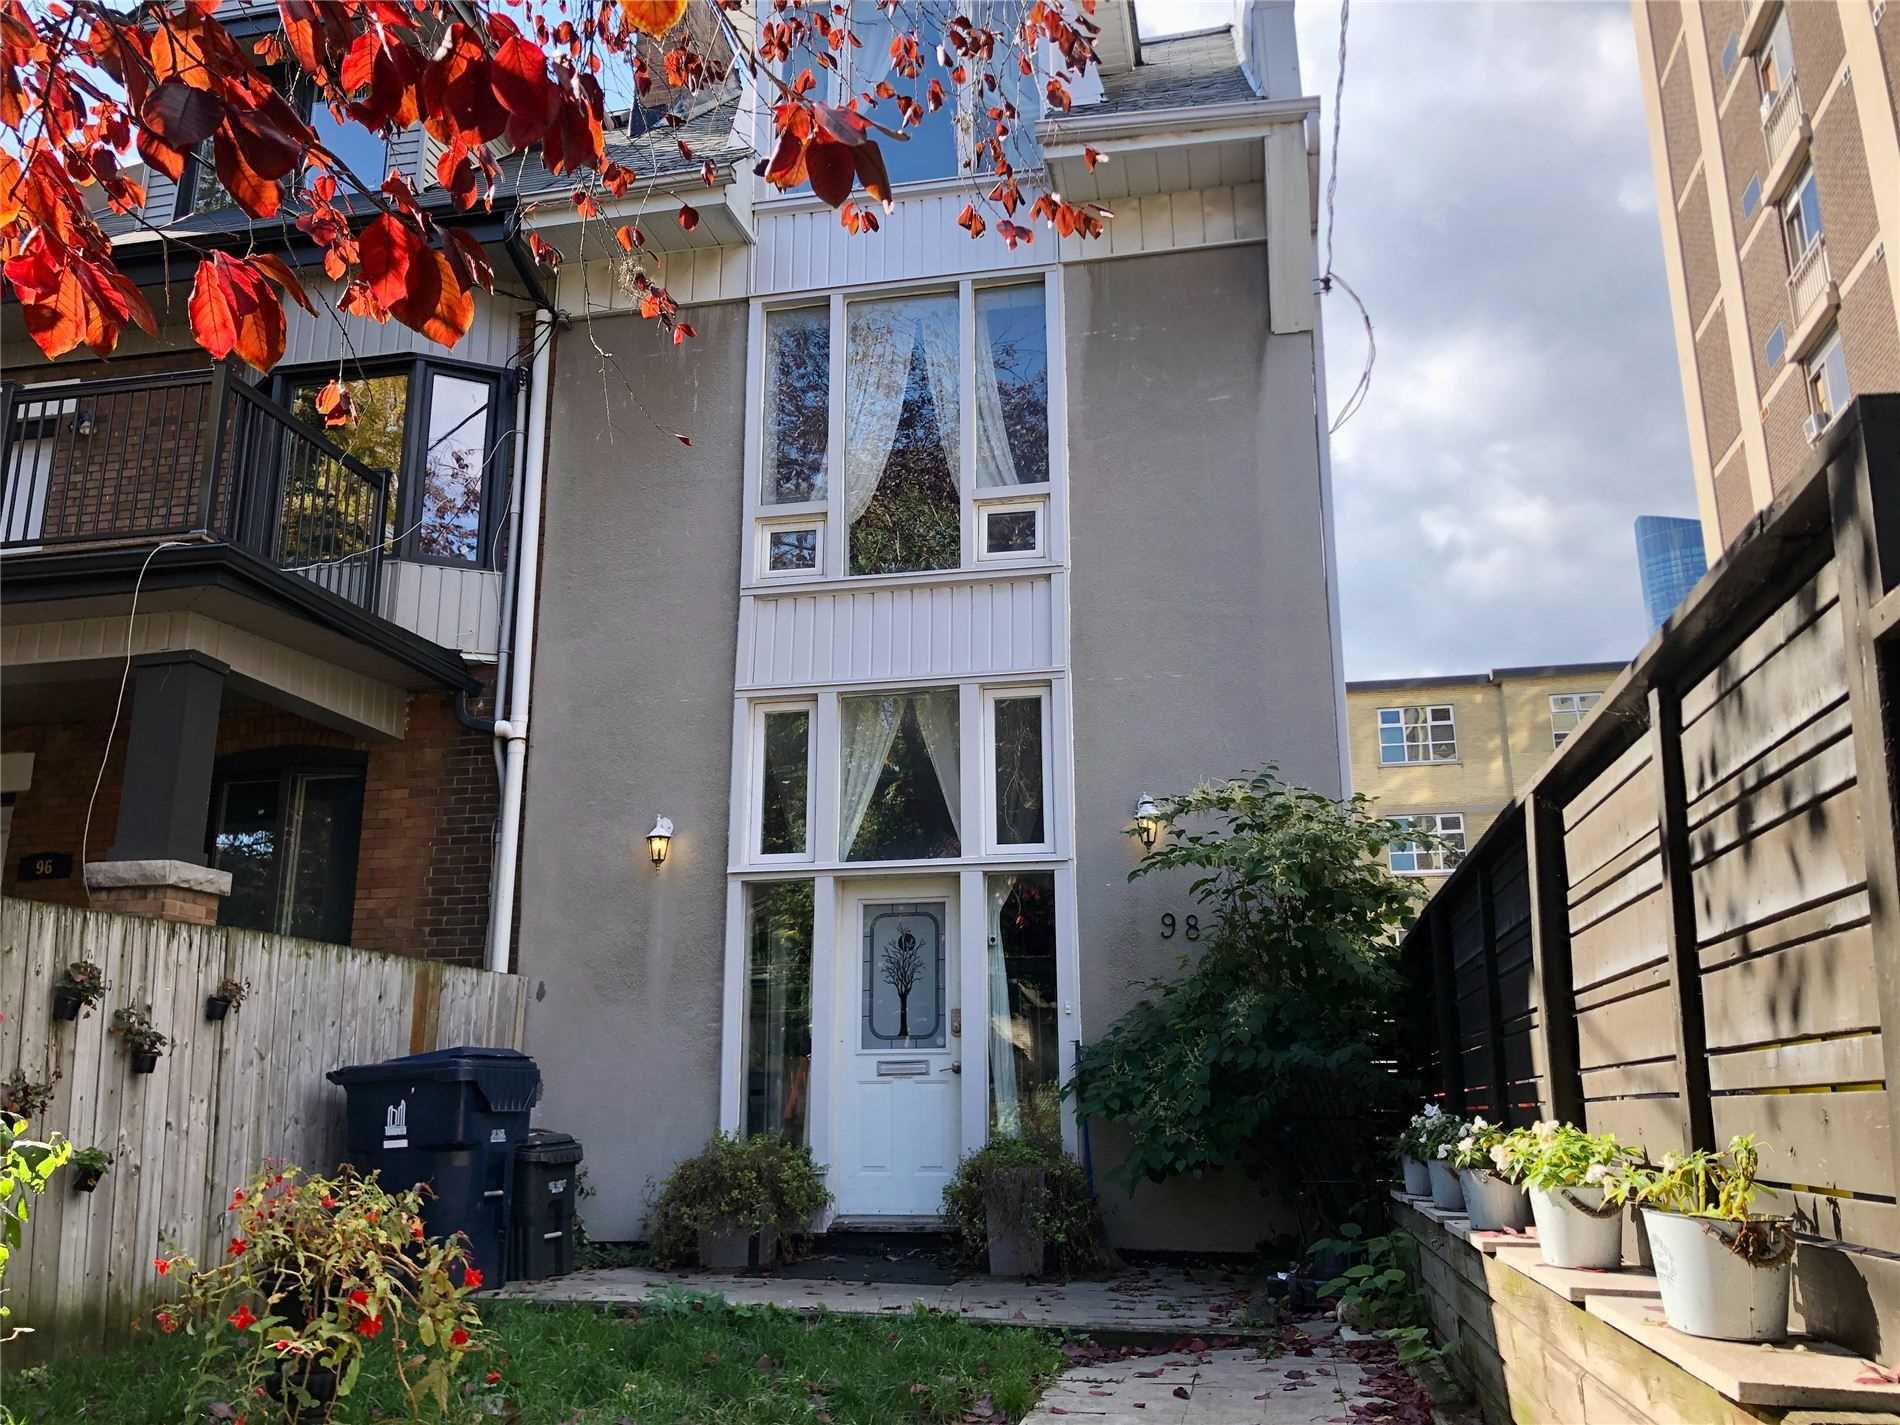 Spacious Garden District, Semi-Det. Home W/ Oversized Principal Rms, 3 Bdrms & Parking. Great Opportunity To Personalize & Update To Own Tastes. Kit. W/ Island & W/Out To Garden. Wide, Main Flr Centre Stairs W/ Light-Well Gives Home Bright/Welcoming Feel. Huge Bdrms On 2nd Flr Each W/ Baths, Perfect For A Growing Family Or For Cost-Sharing. 3rd Flr Bdrm/Family Rm W/ Walkout To Sun-Soaked Roof-Top Terrace. Steps To Parks, Shopping, Transit & Fin. Core.